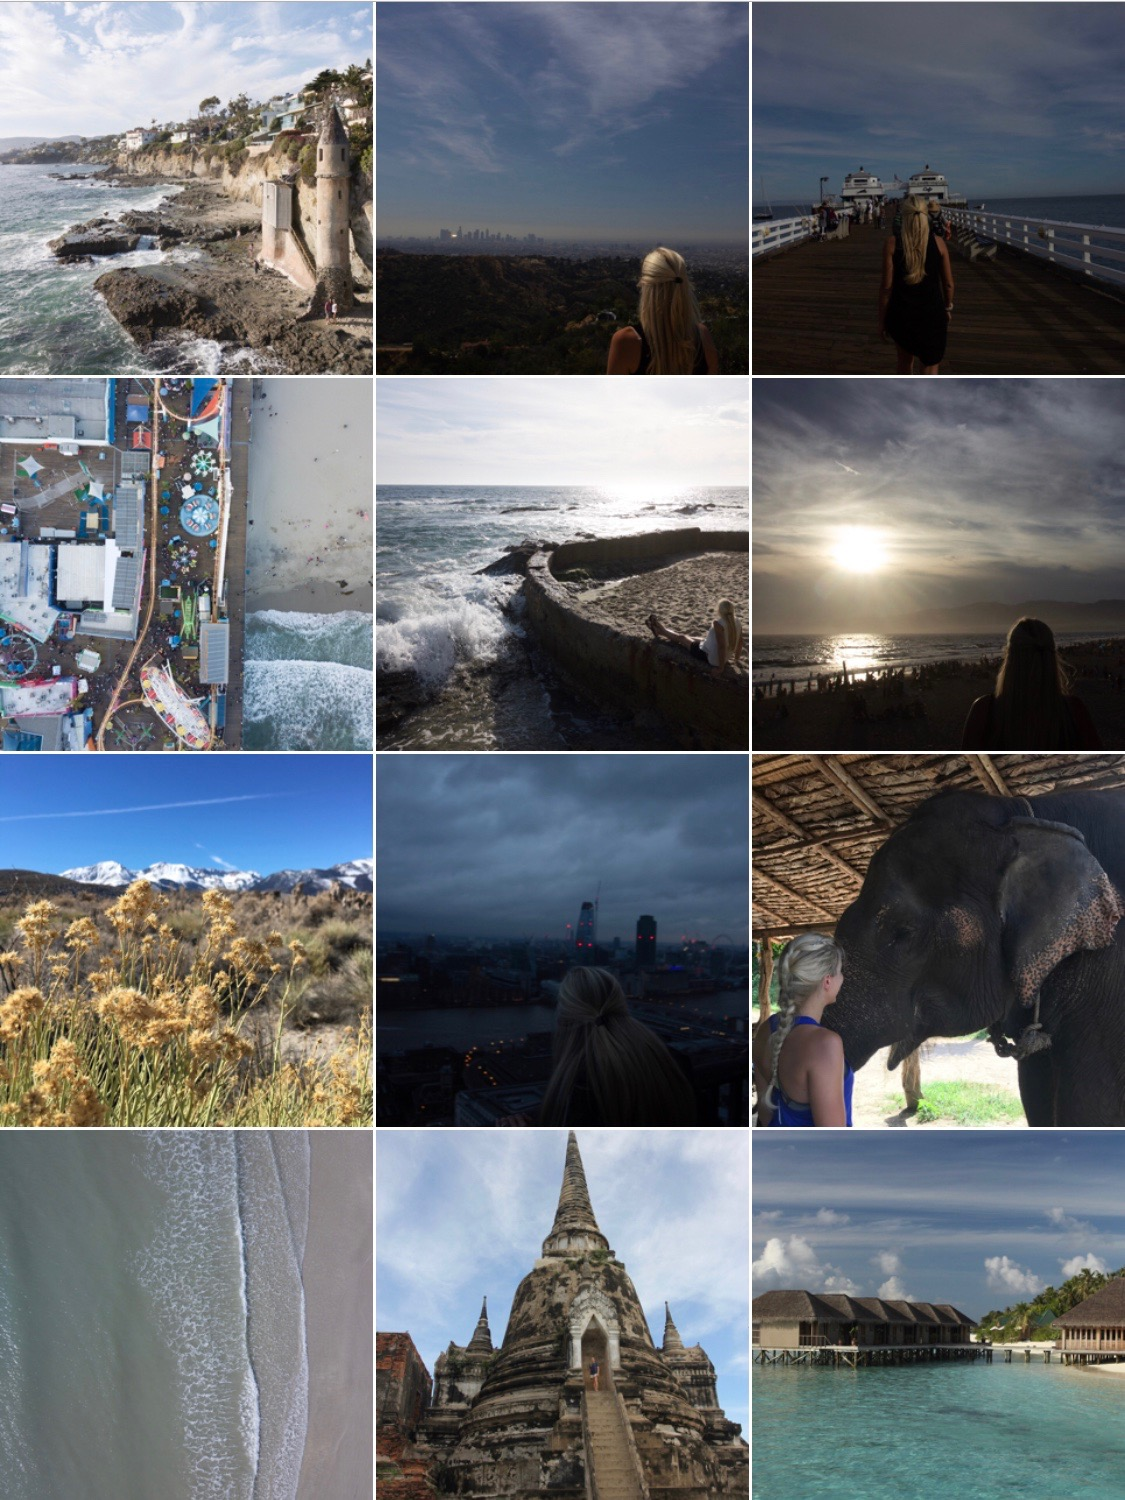 What my Instagram feed would look like without edits in Lightroom to make my feed cohesive. See how to grow your Instagram authentically on my blog post!